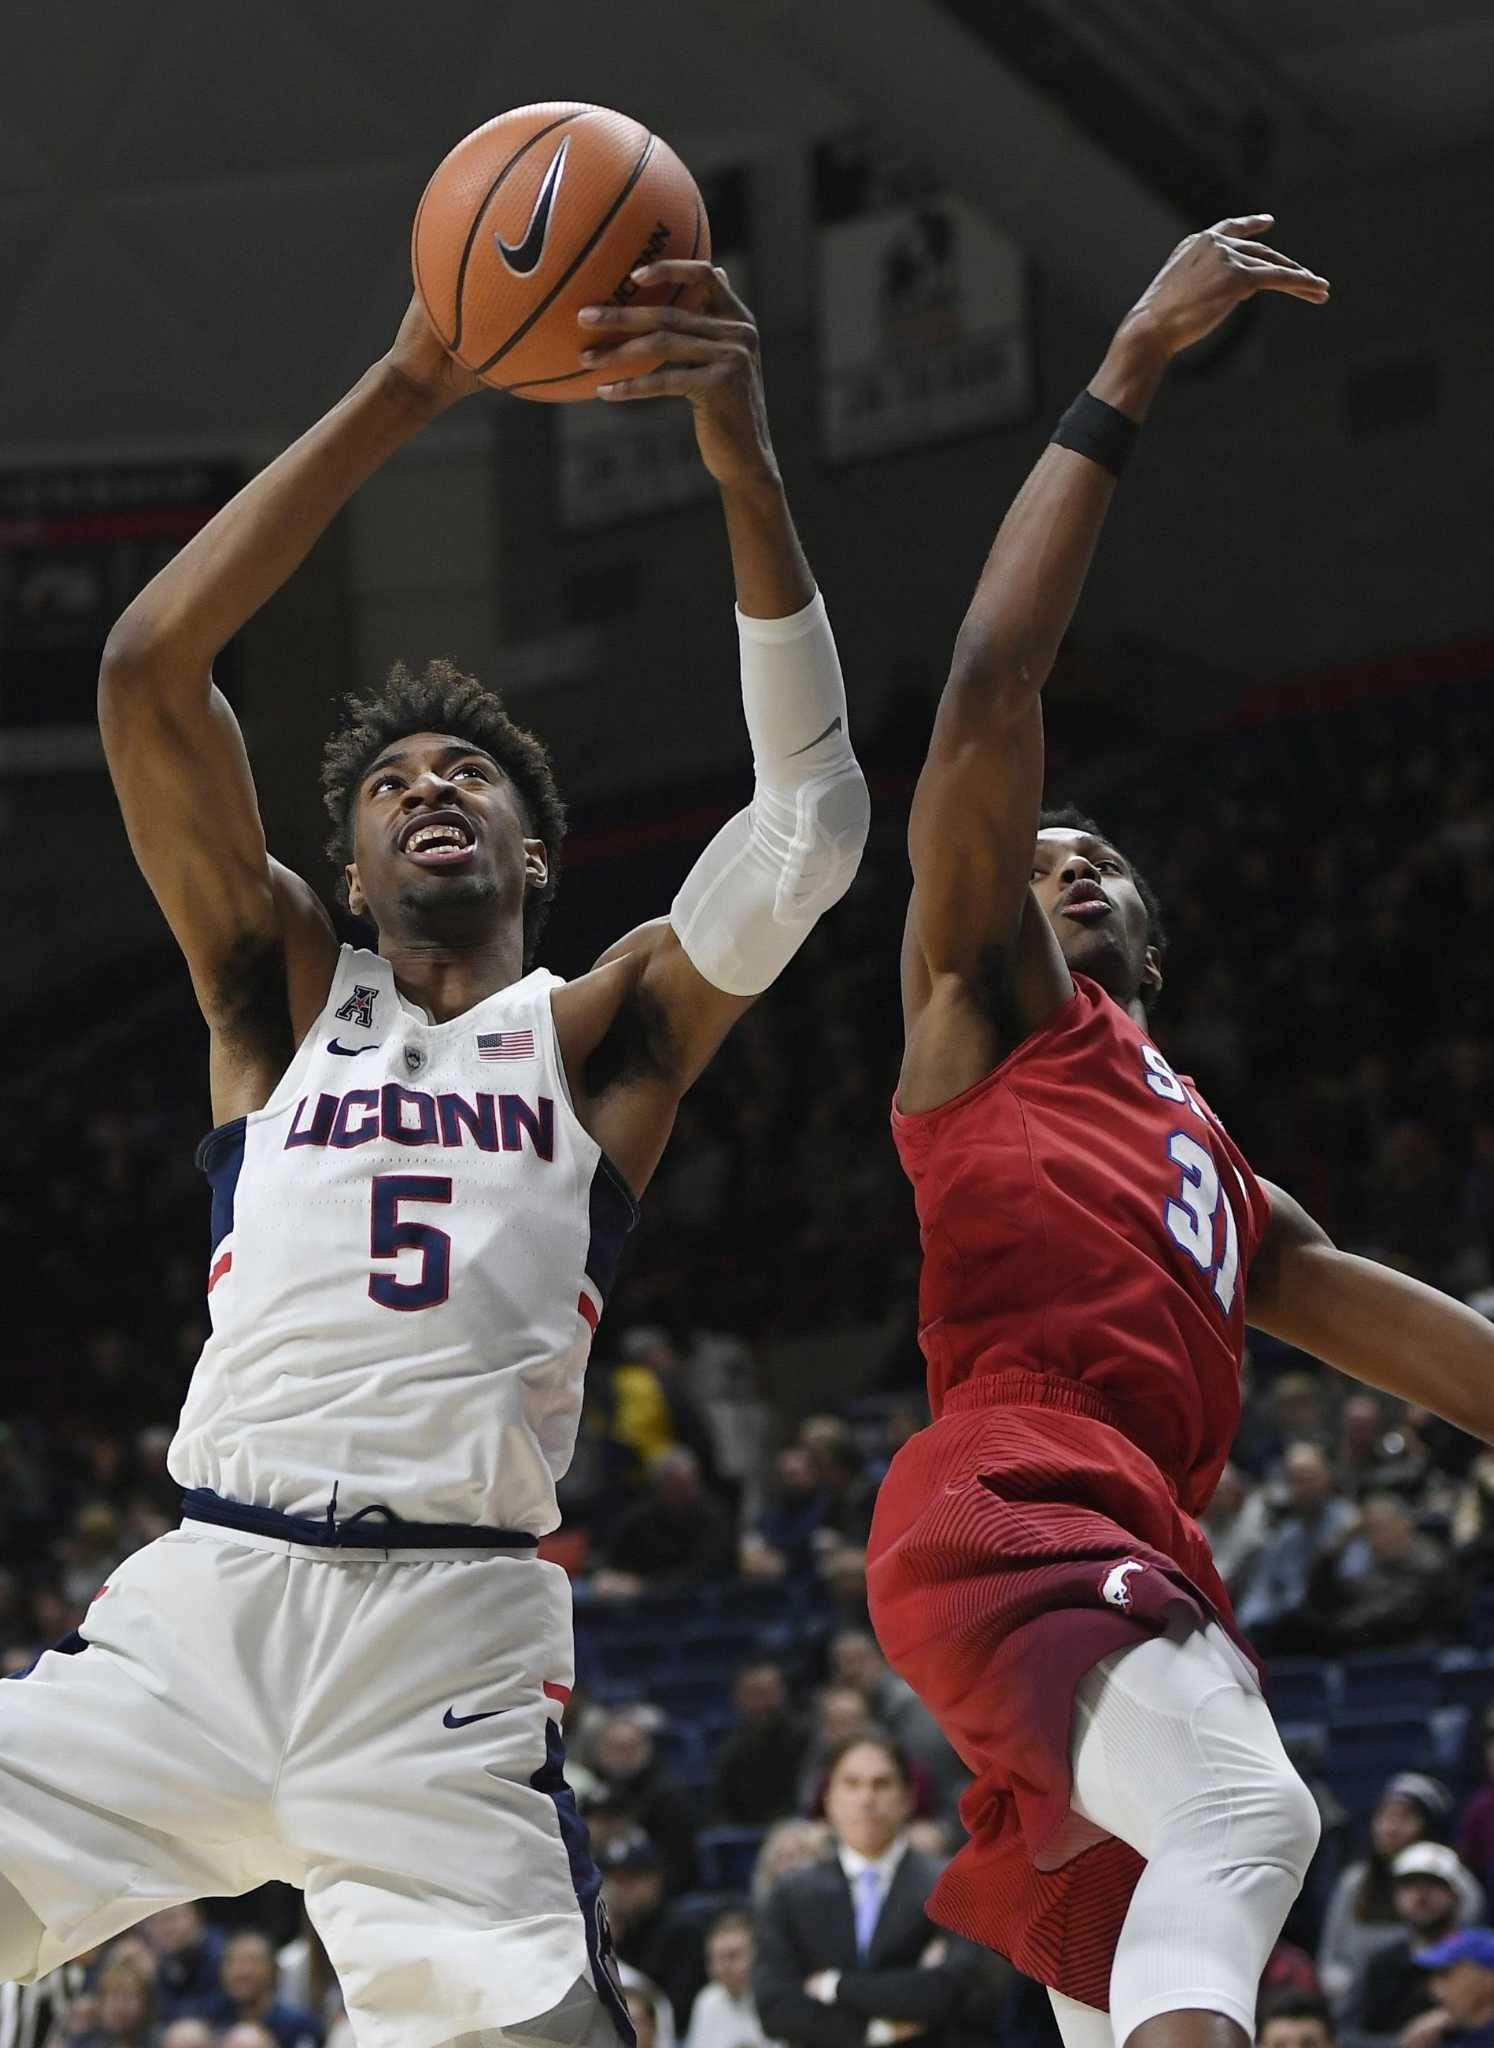 Pin by Dan Nardini on UCONN Basketball in 2020 (With